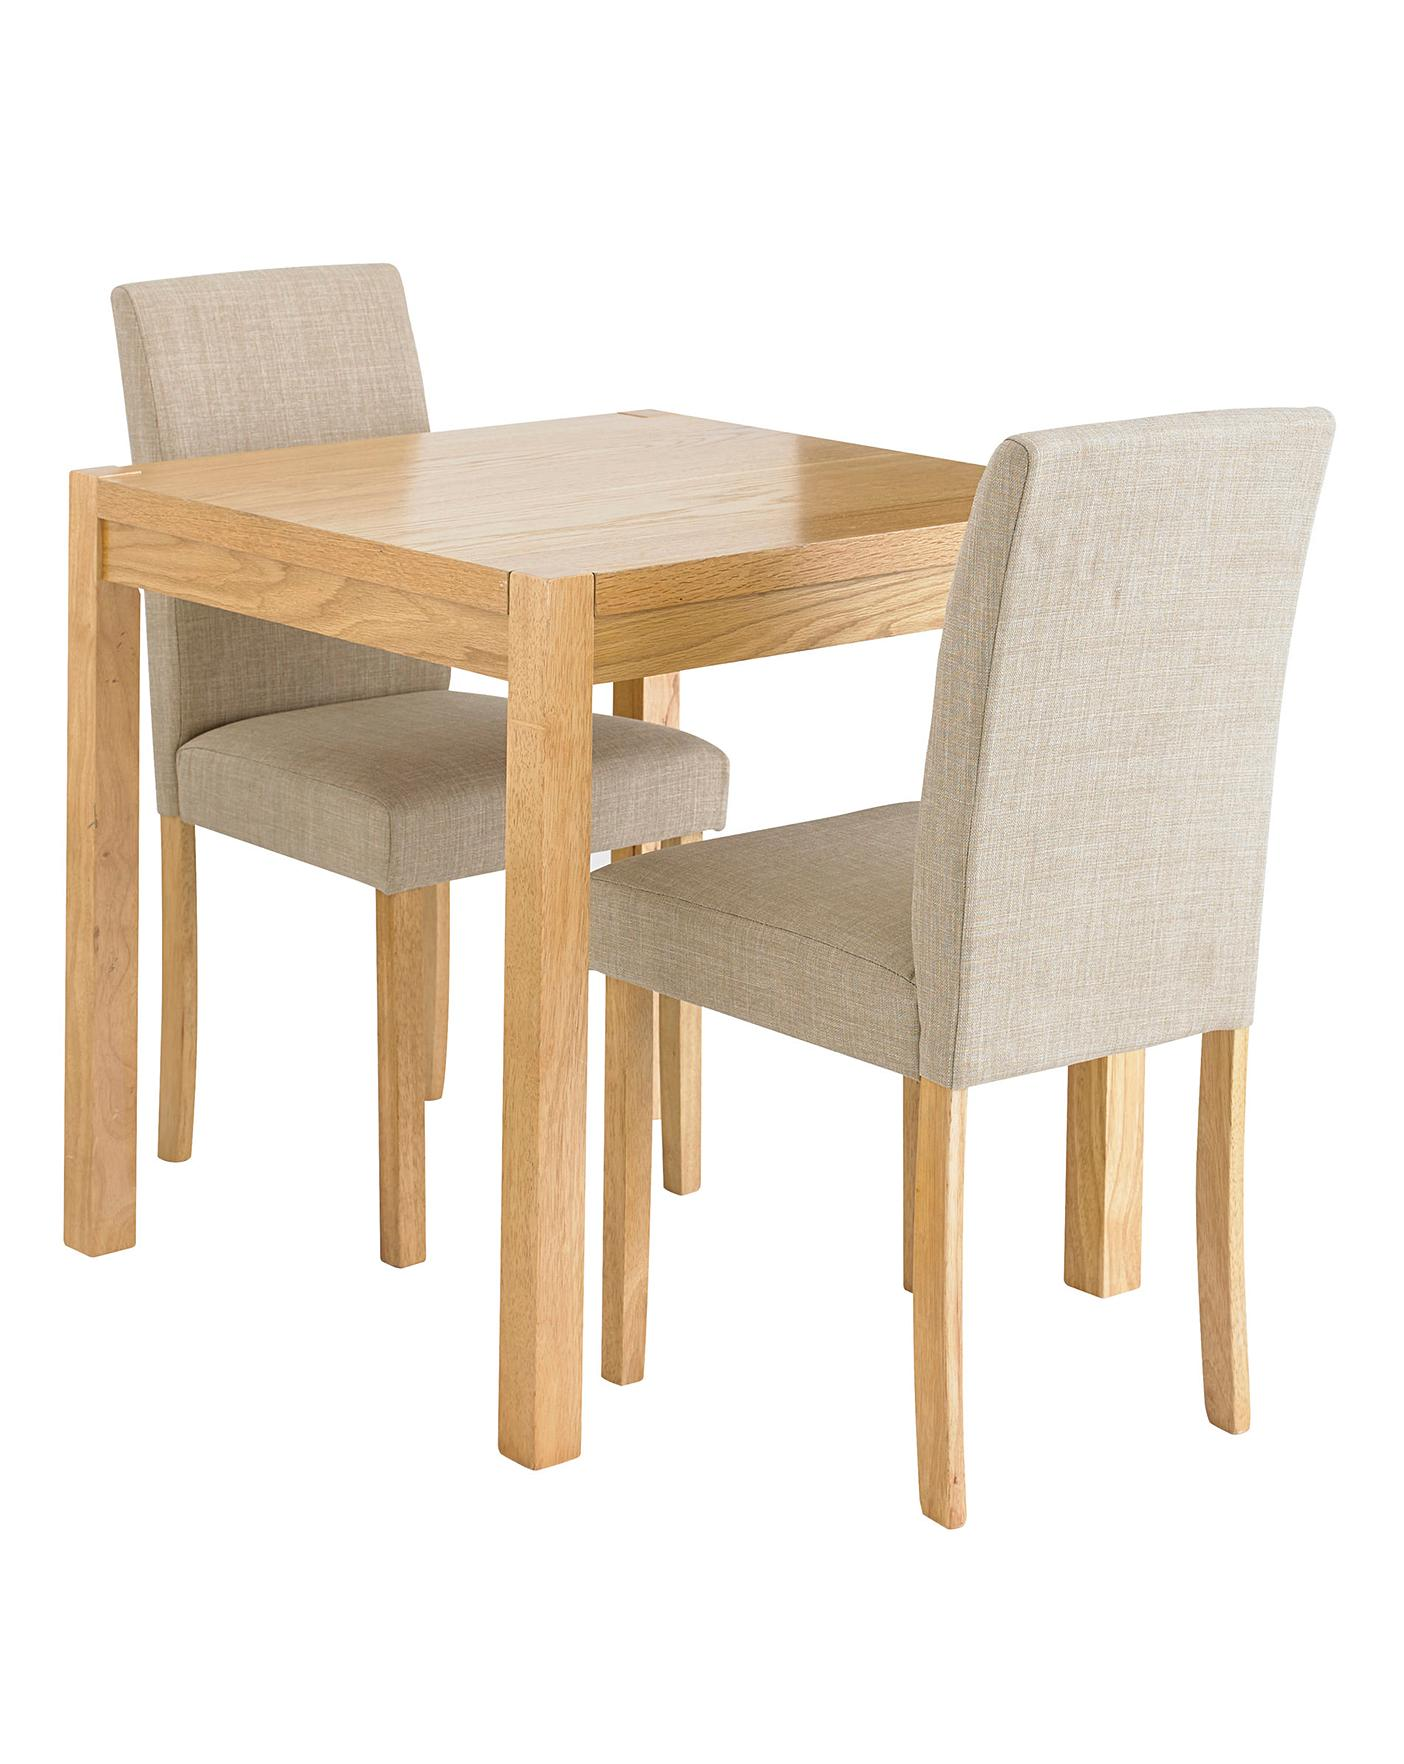 Outstanding Oakham Table 2 Mia Fabric Chairs Andrewgaddart Wooden Chair Designs For Living Room Andrewgaddartcom